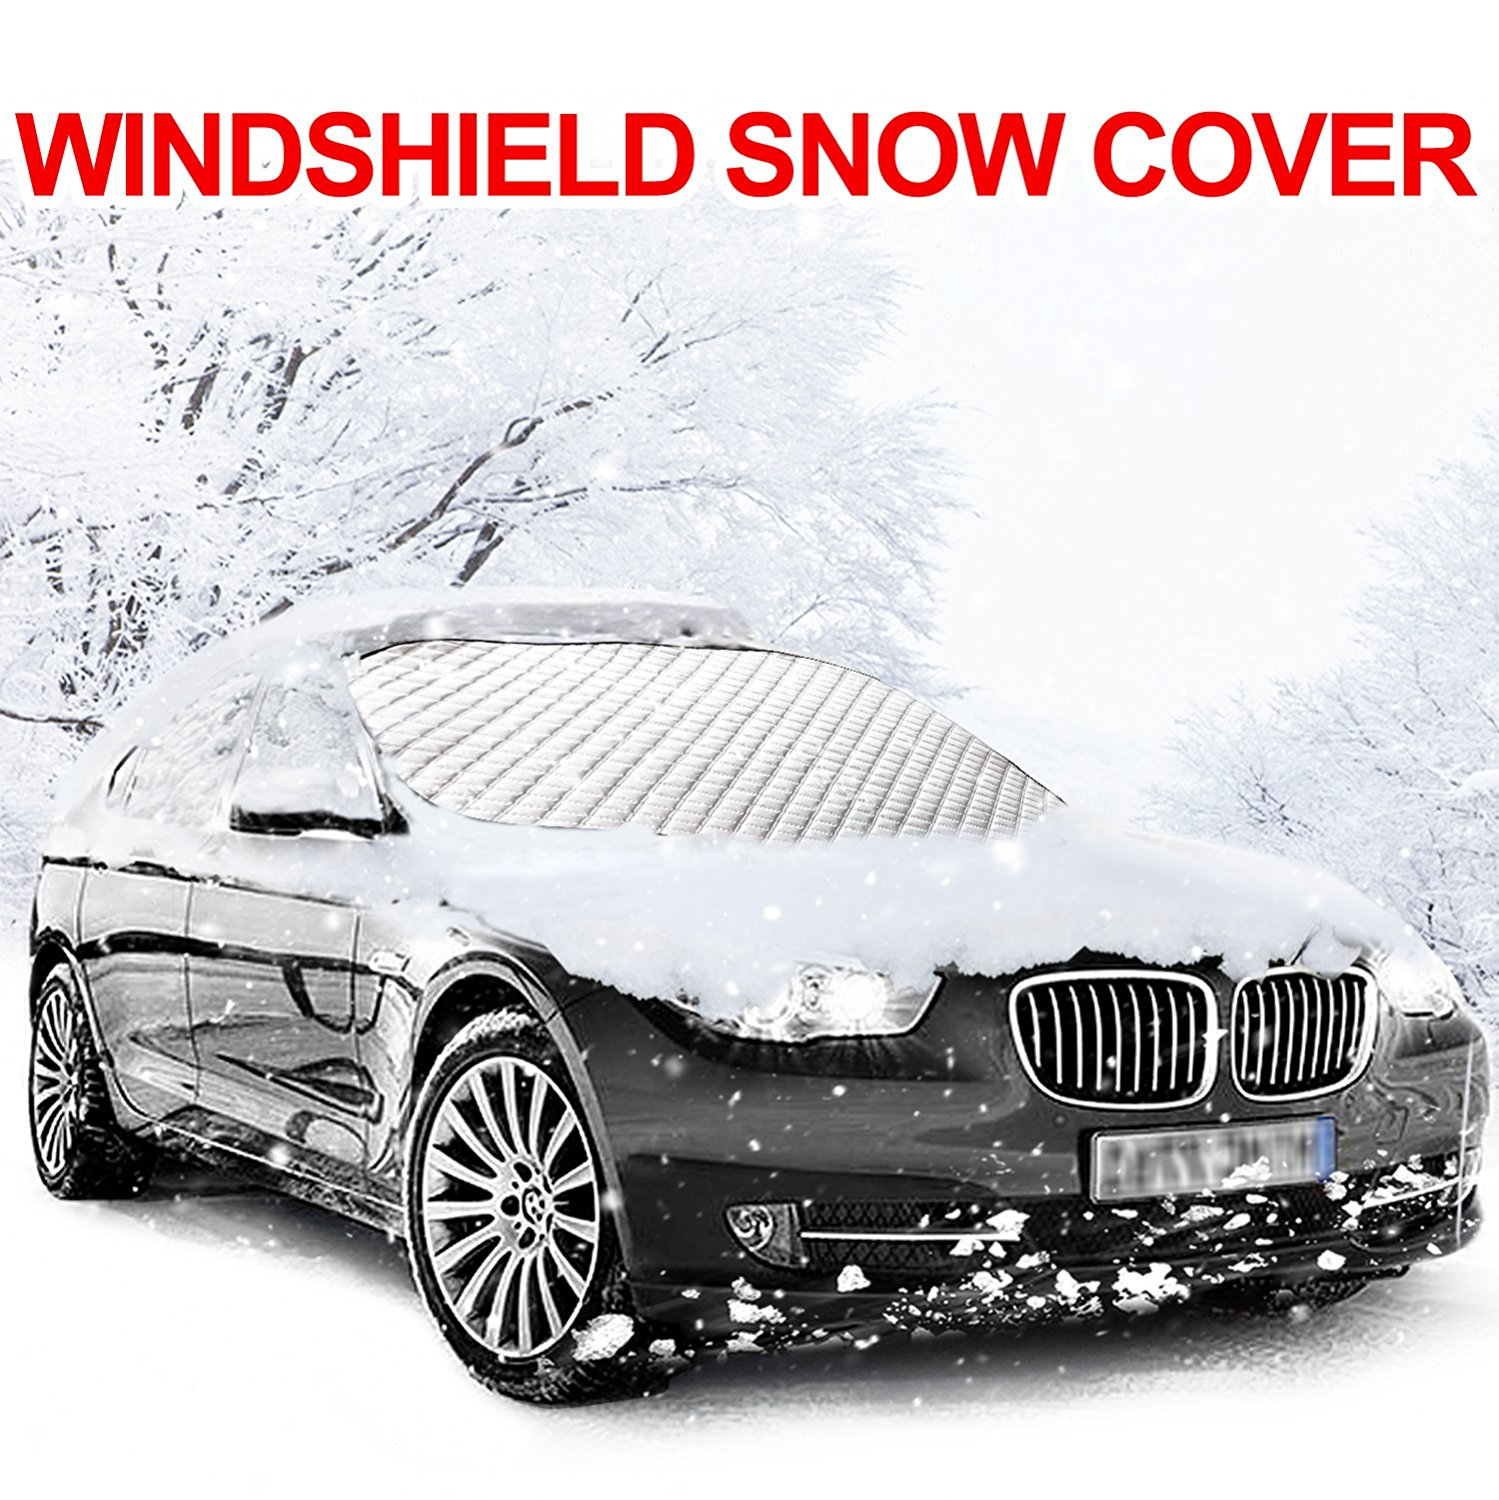 """Car Windshield Snow Cover, KKtick Windshield Snow and Ice Protector Standard-size, Extra Large Heavy Duty Snow Covers Universal Fits for Cars and Mid-Size Vehicles (72"""" x 46"""")"""